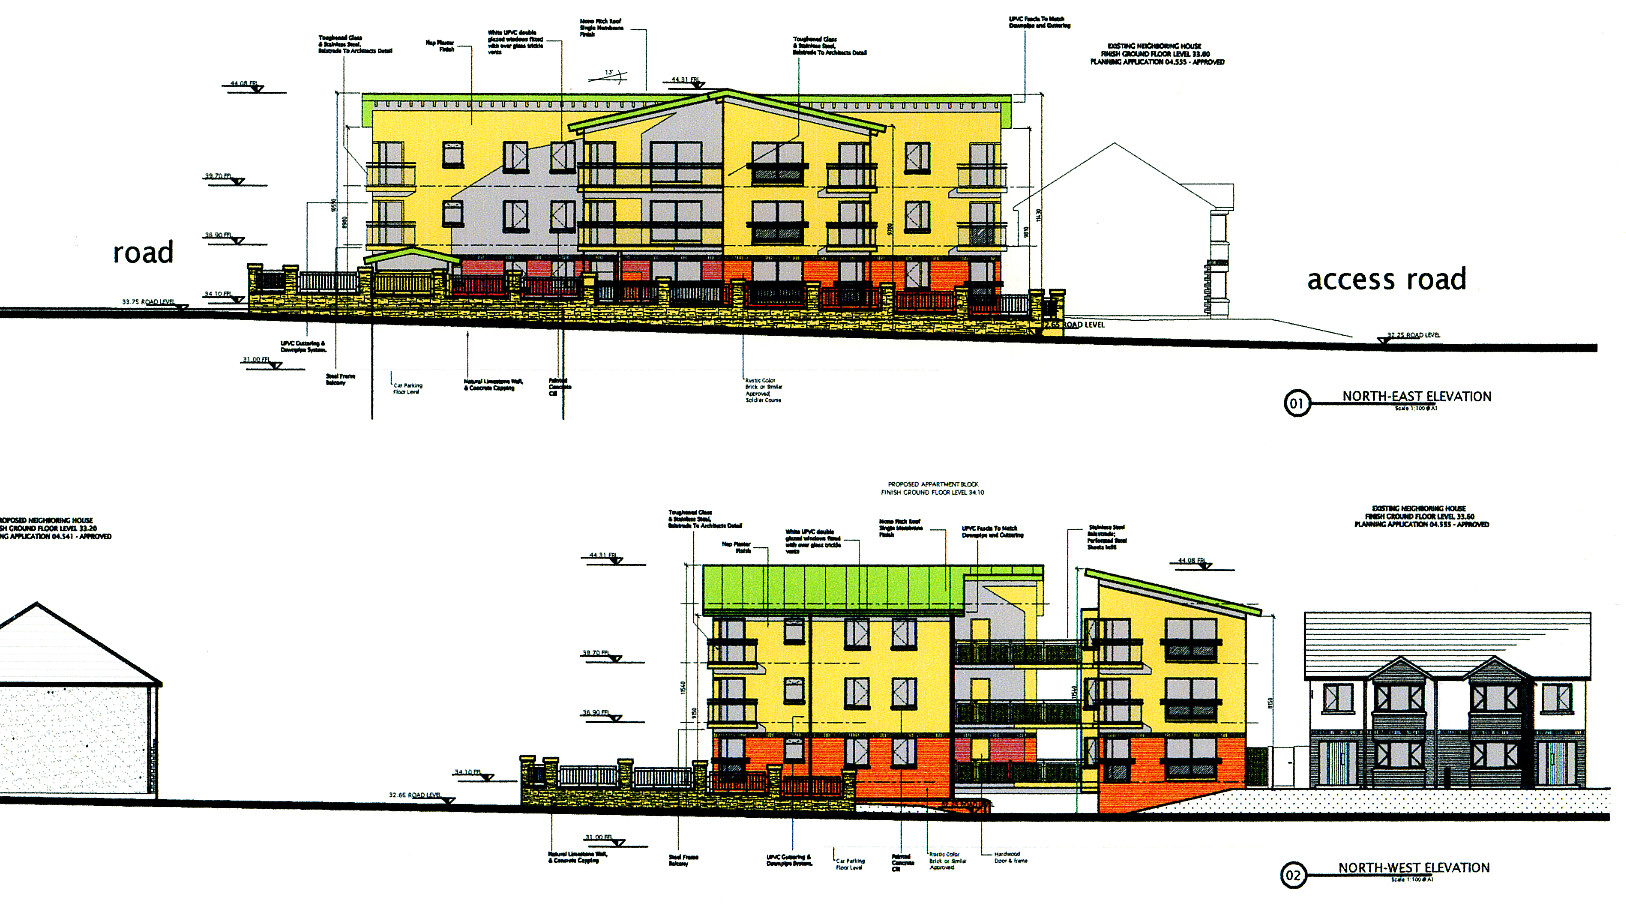 elevations of the apartment block as prepared with CAD